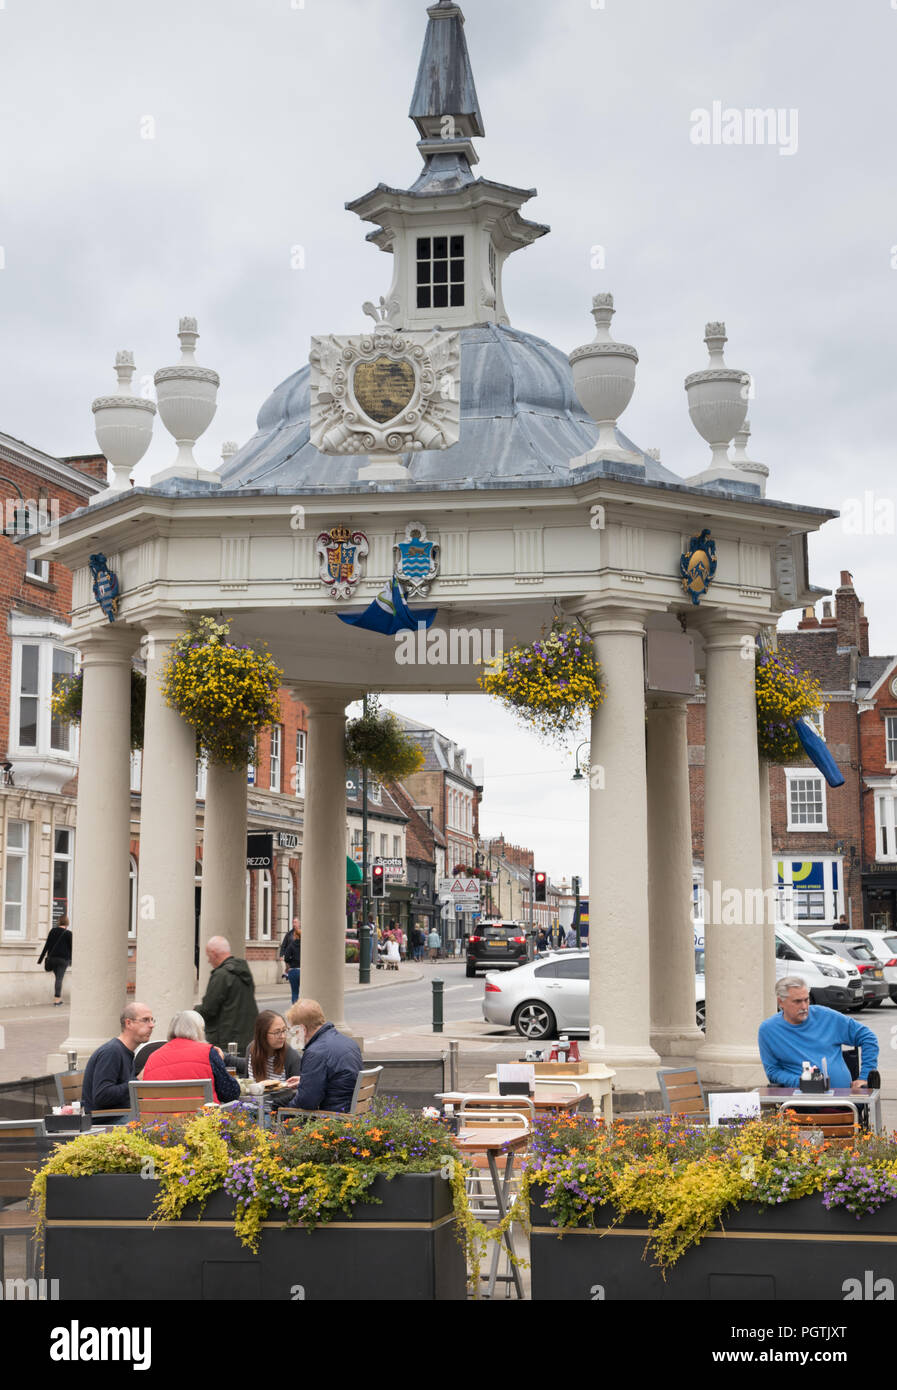 The bandstand in Beverley, East Yorkshire - Stock Image